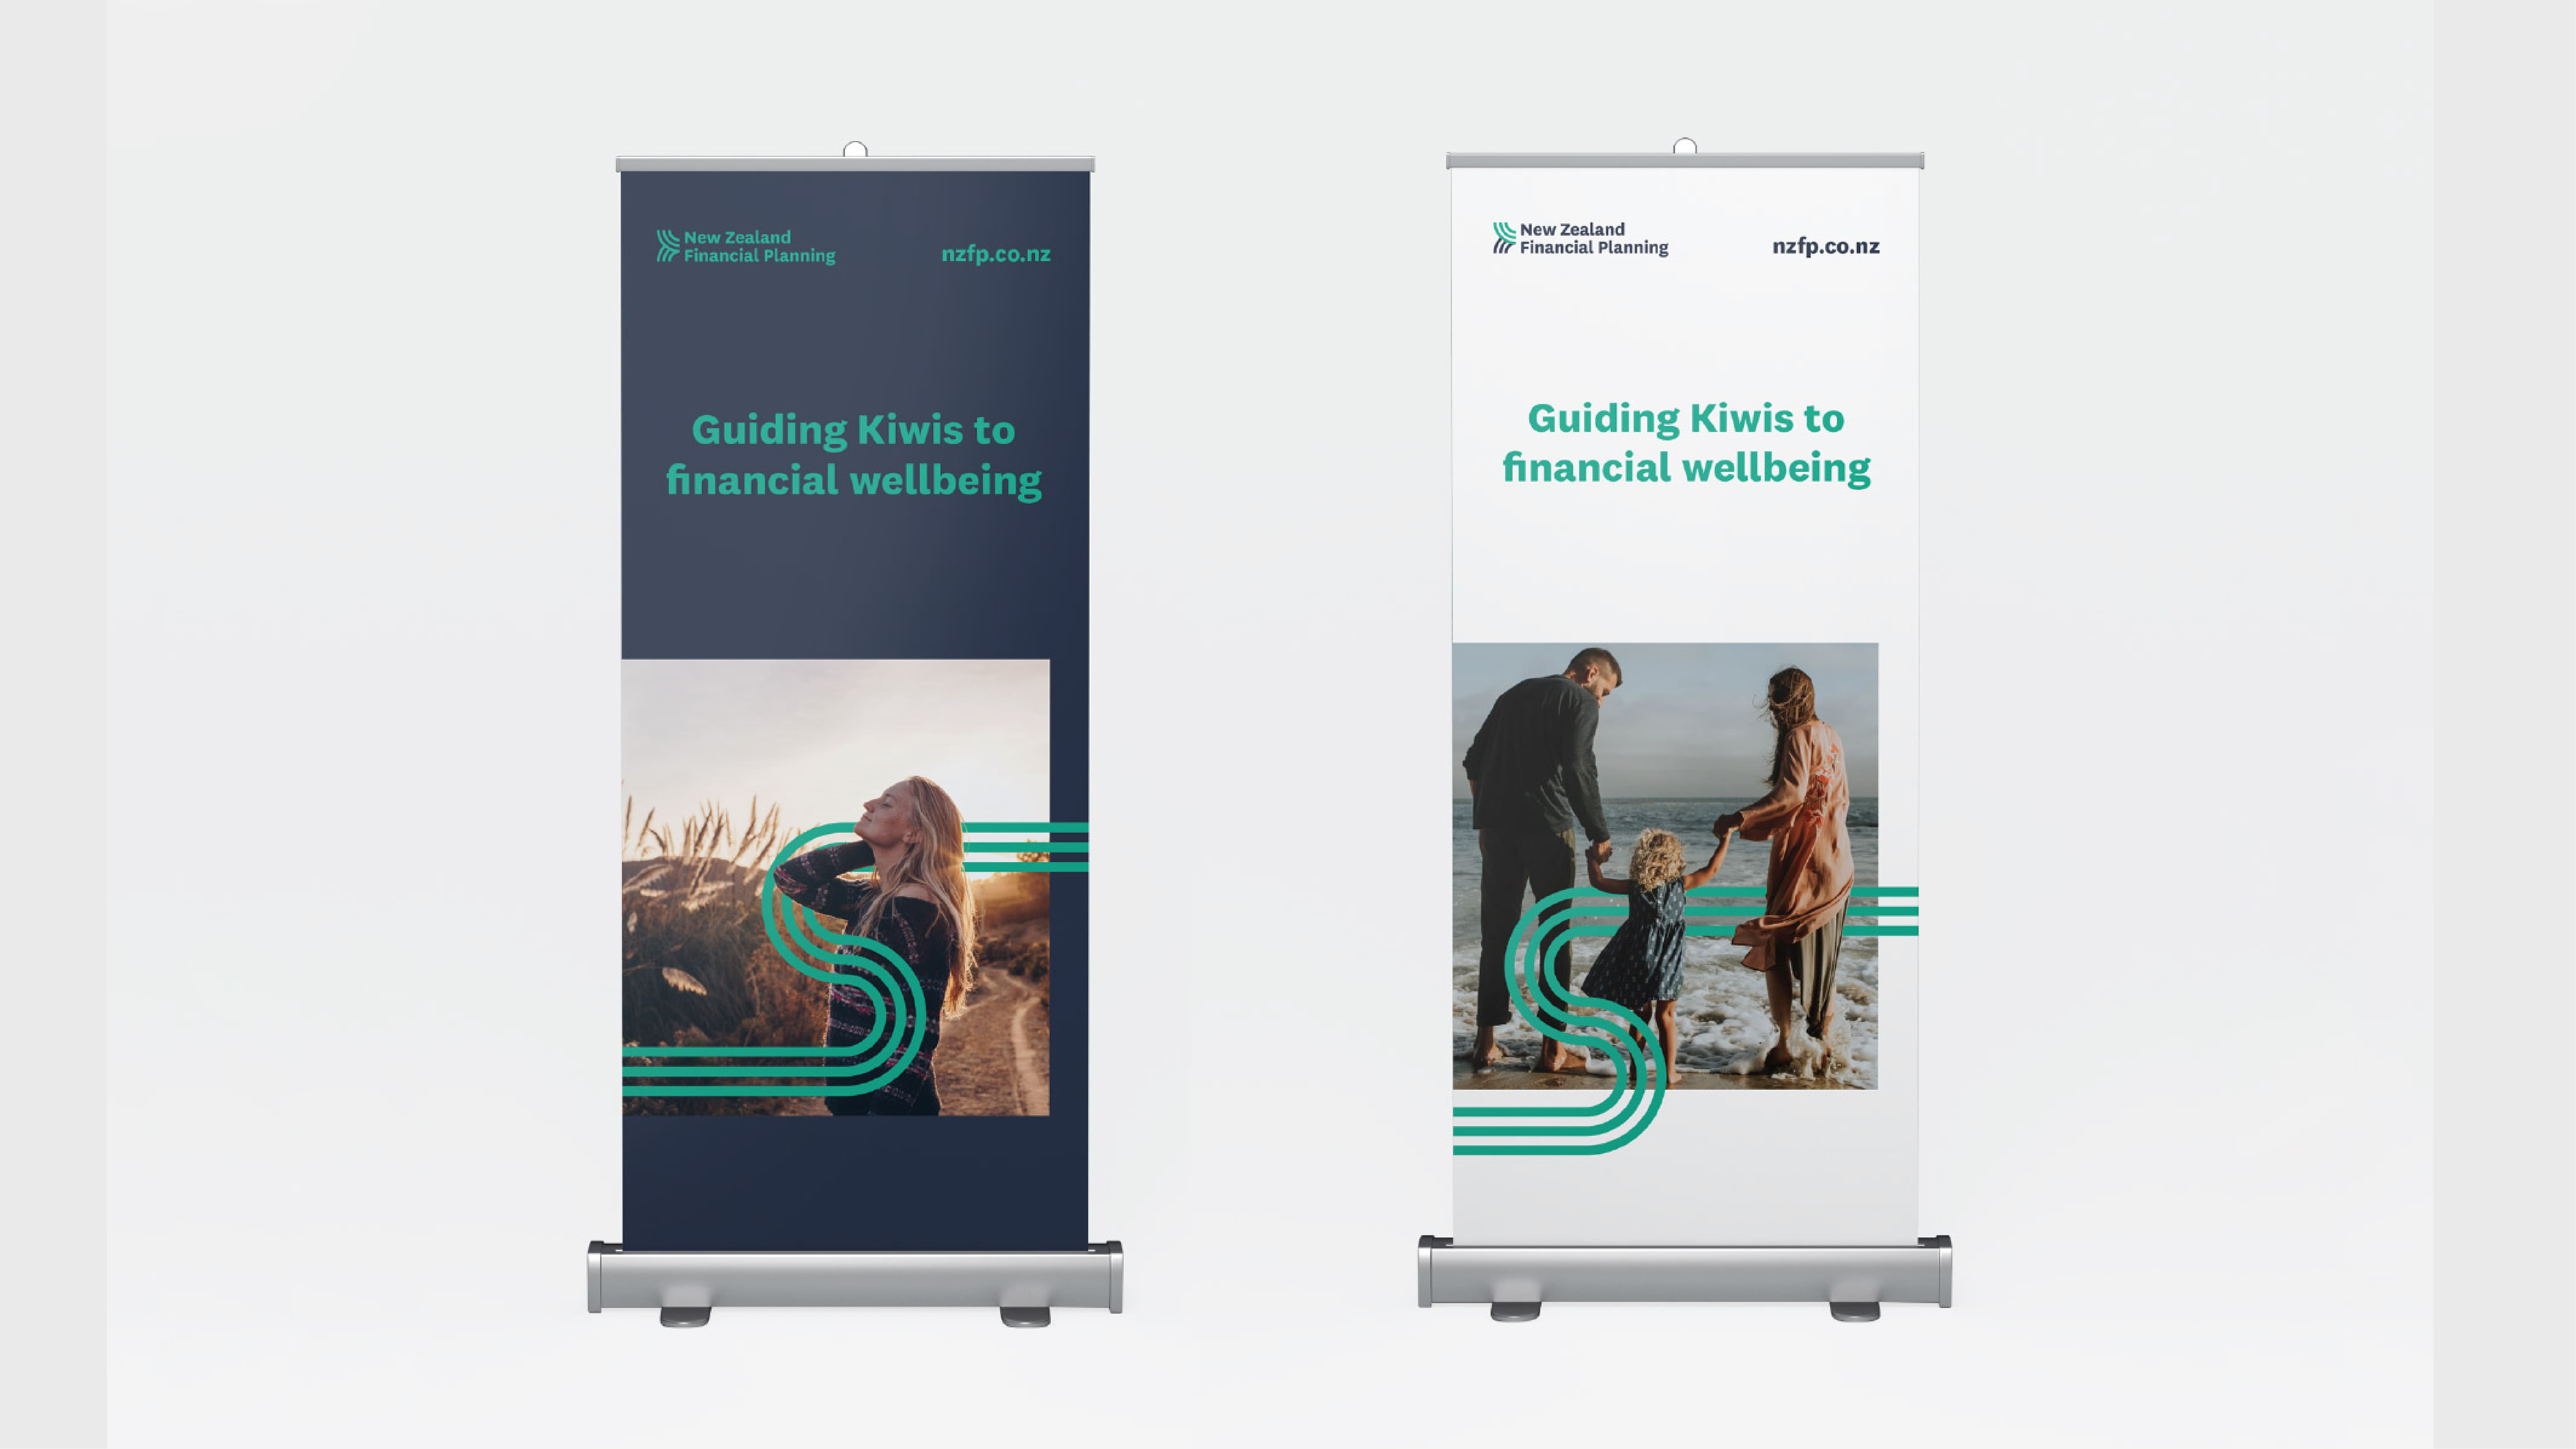 attraction studio new zealand financial planning project banners